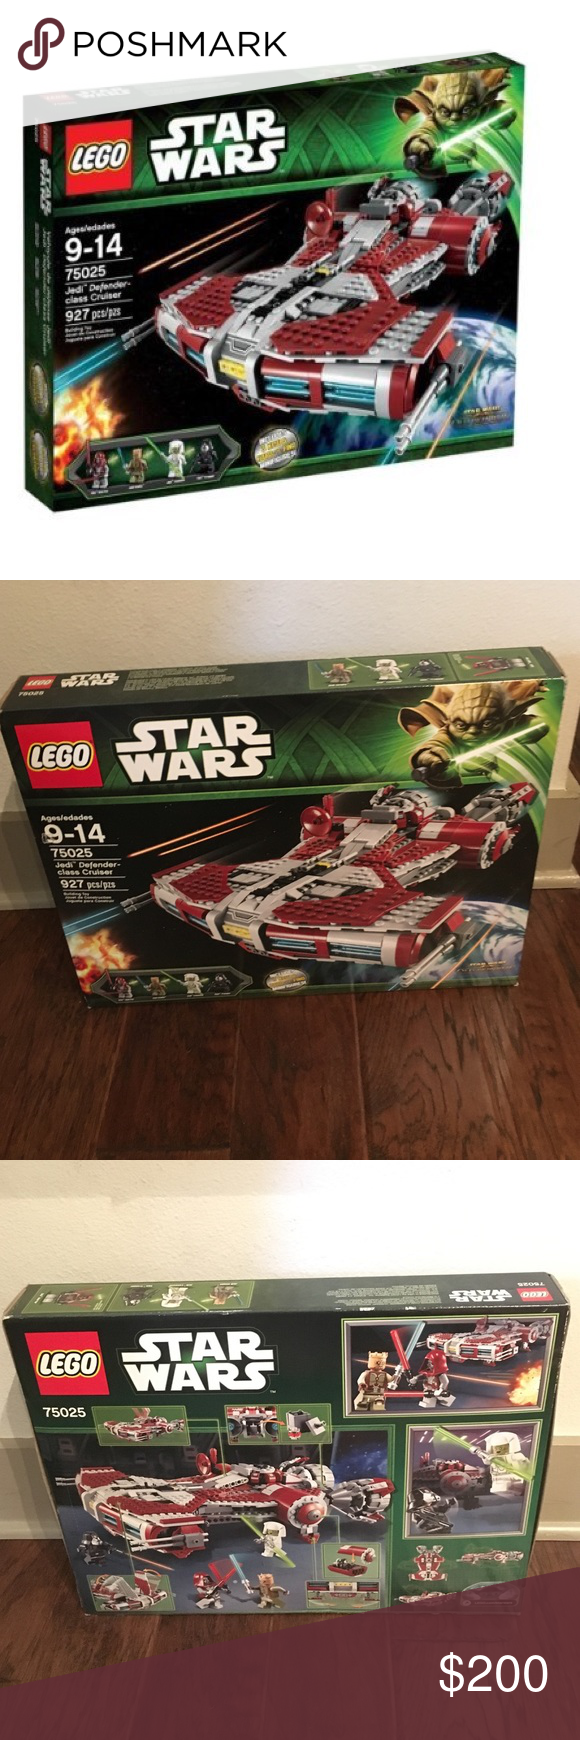 Star Wars Jedi Defender Class Cruiser 75025 Brand New in box Lego Other